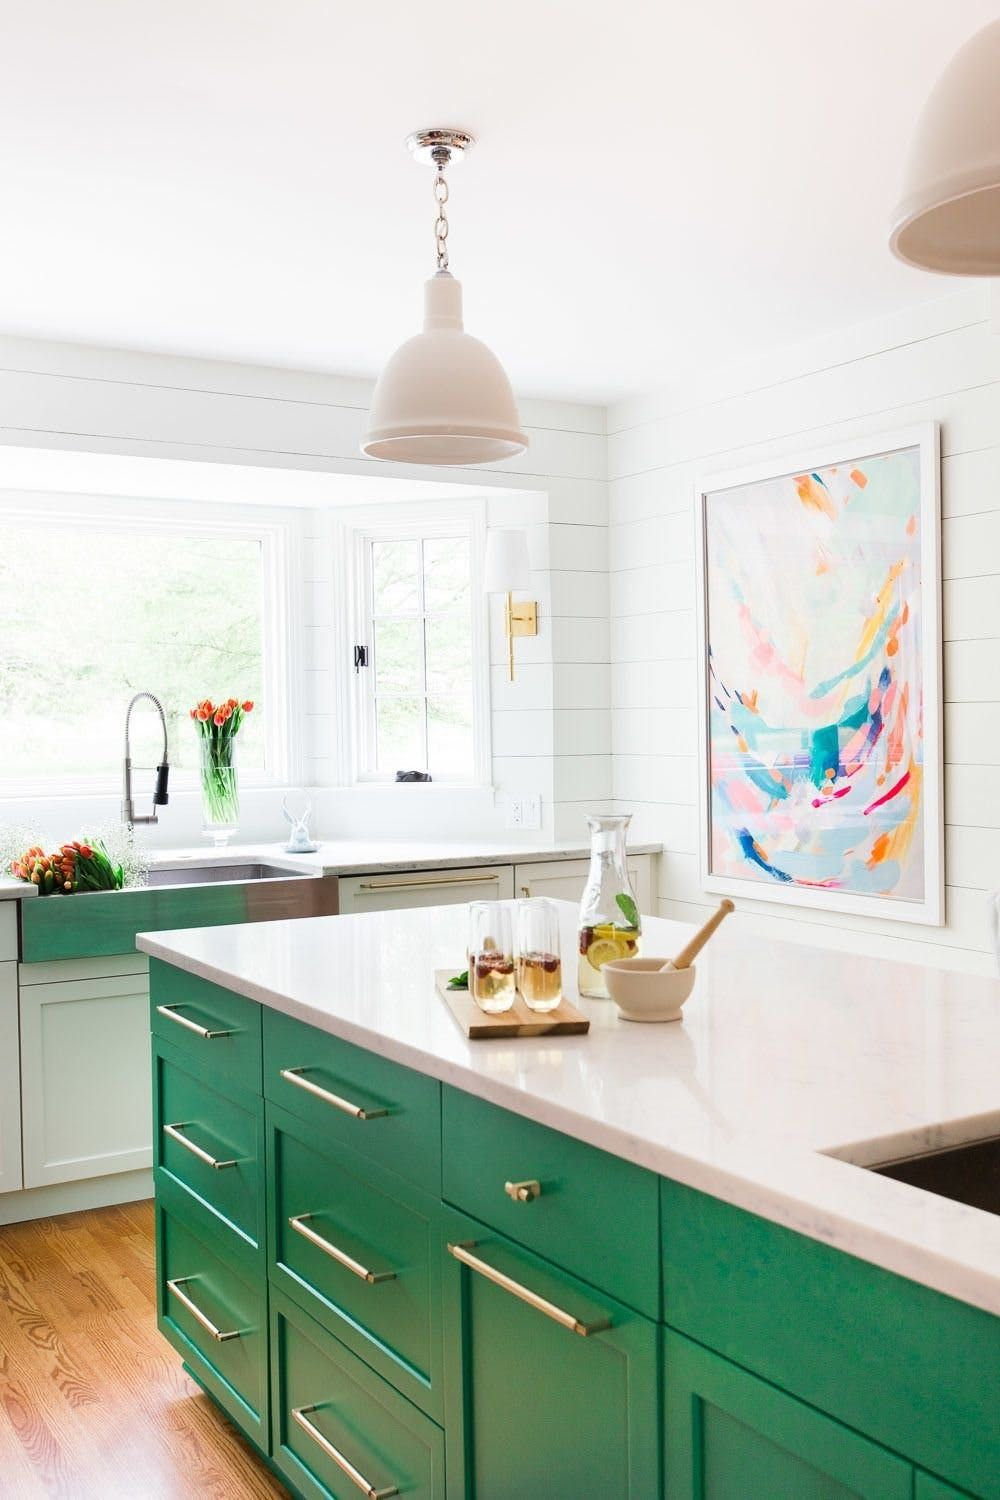 15 Kitchens With Bright Green Cabinets Green Kitchen Island Interior Design Kitchen Green Kitchen Cabinets